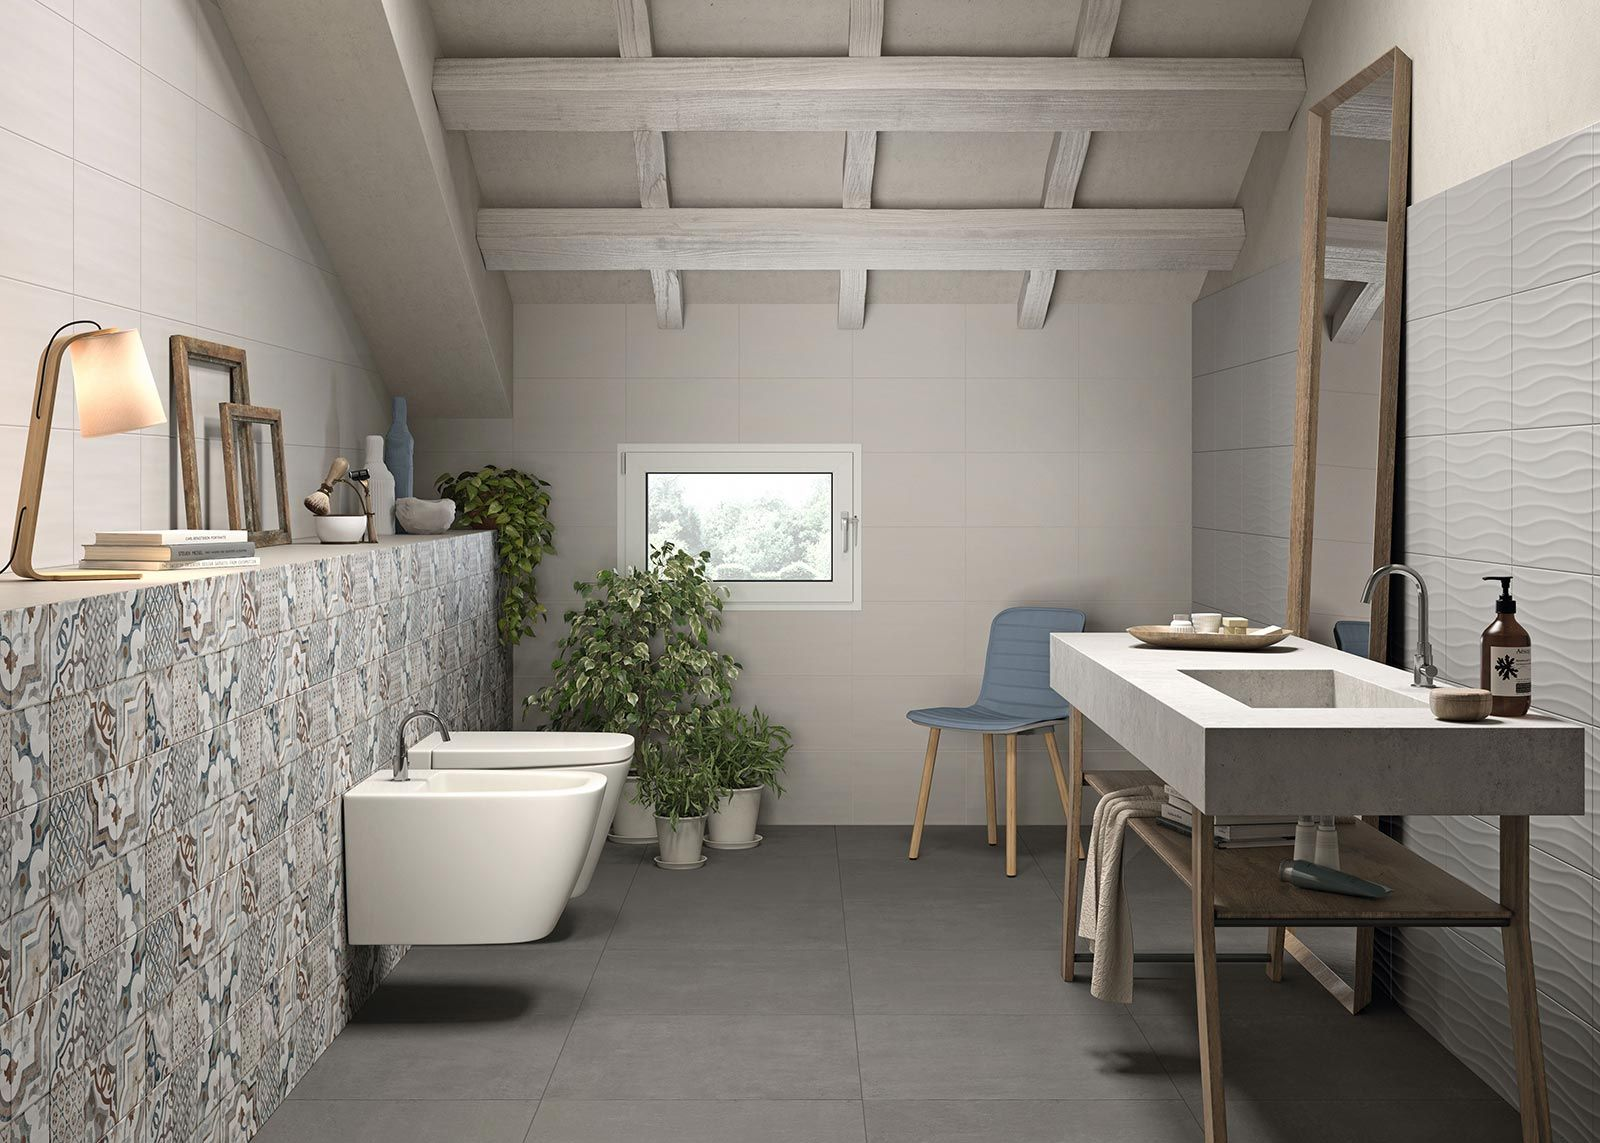 Neutral piastrelle in ceramica marazzi bathroom design